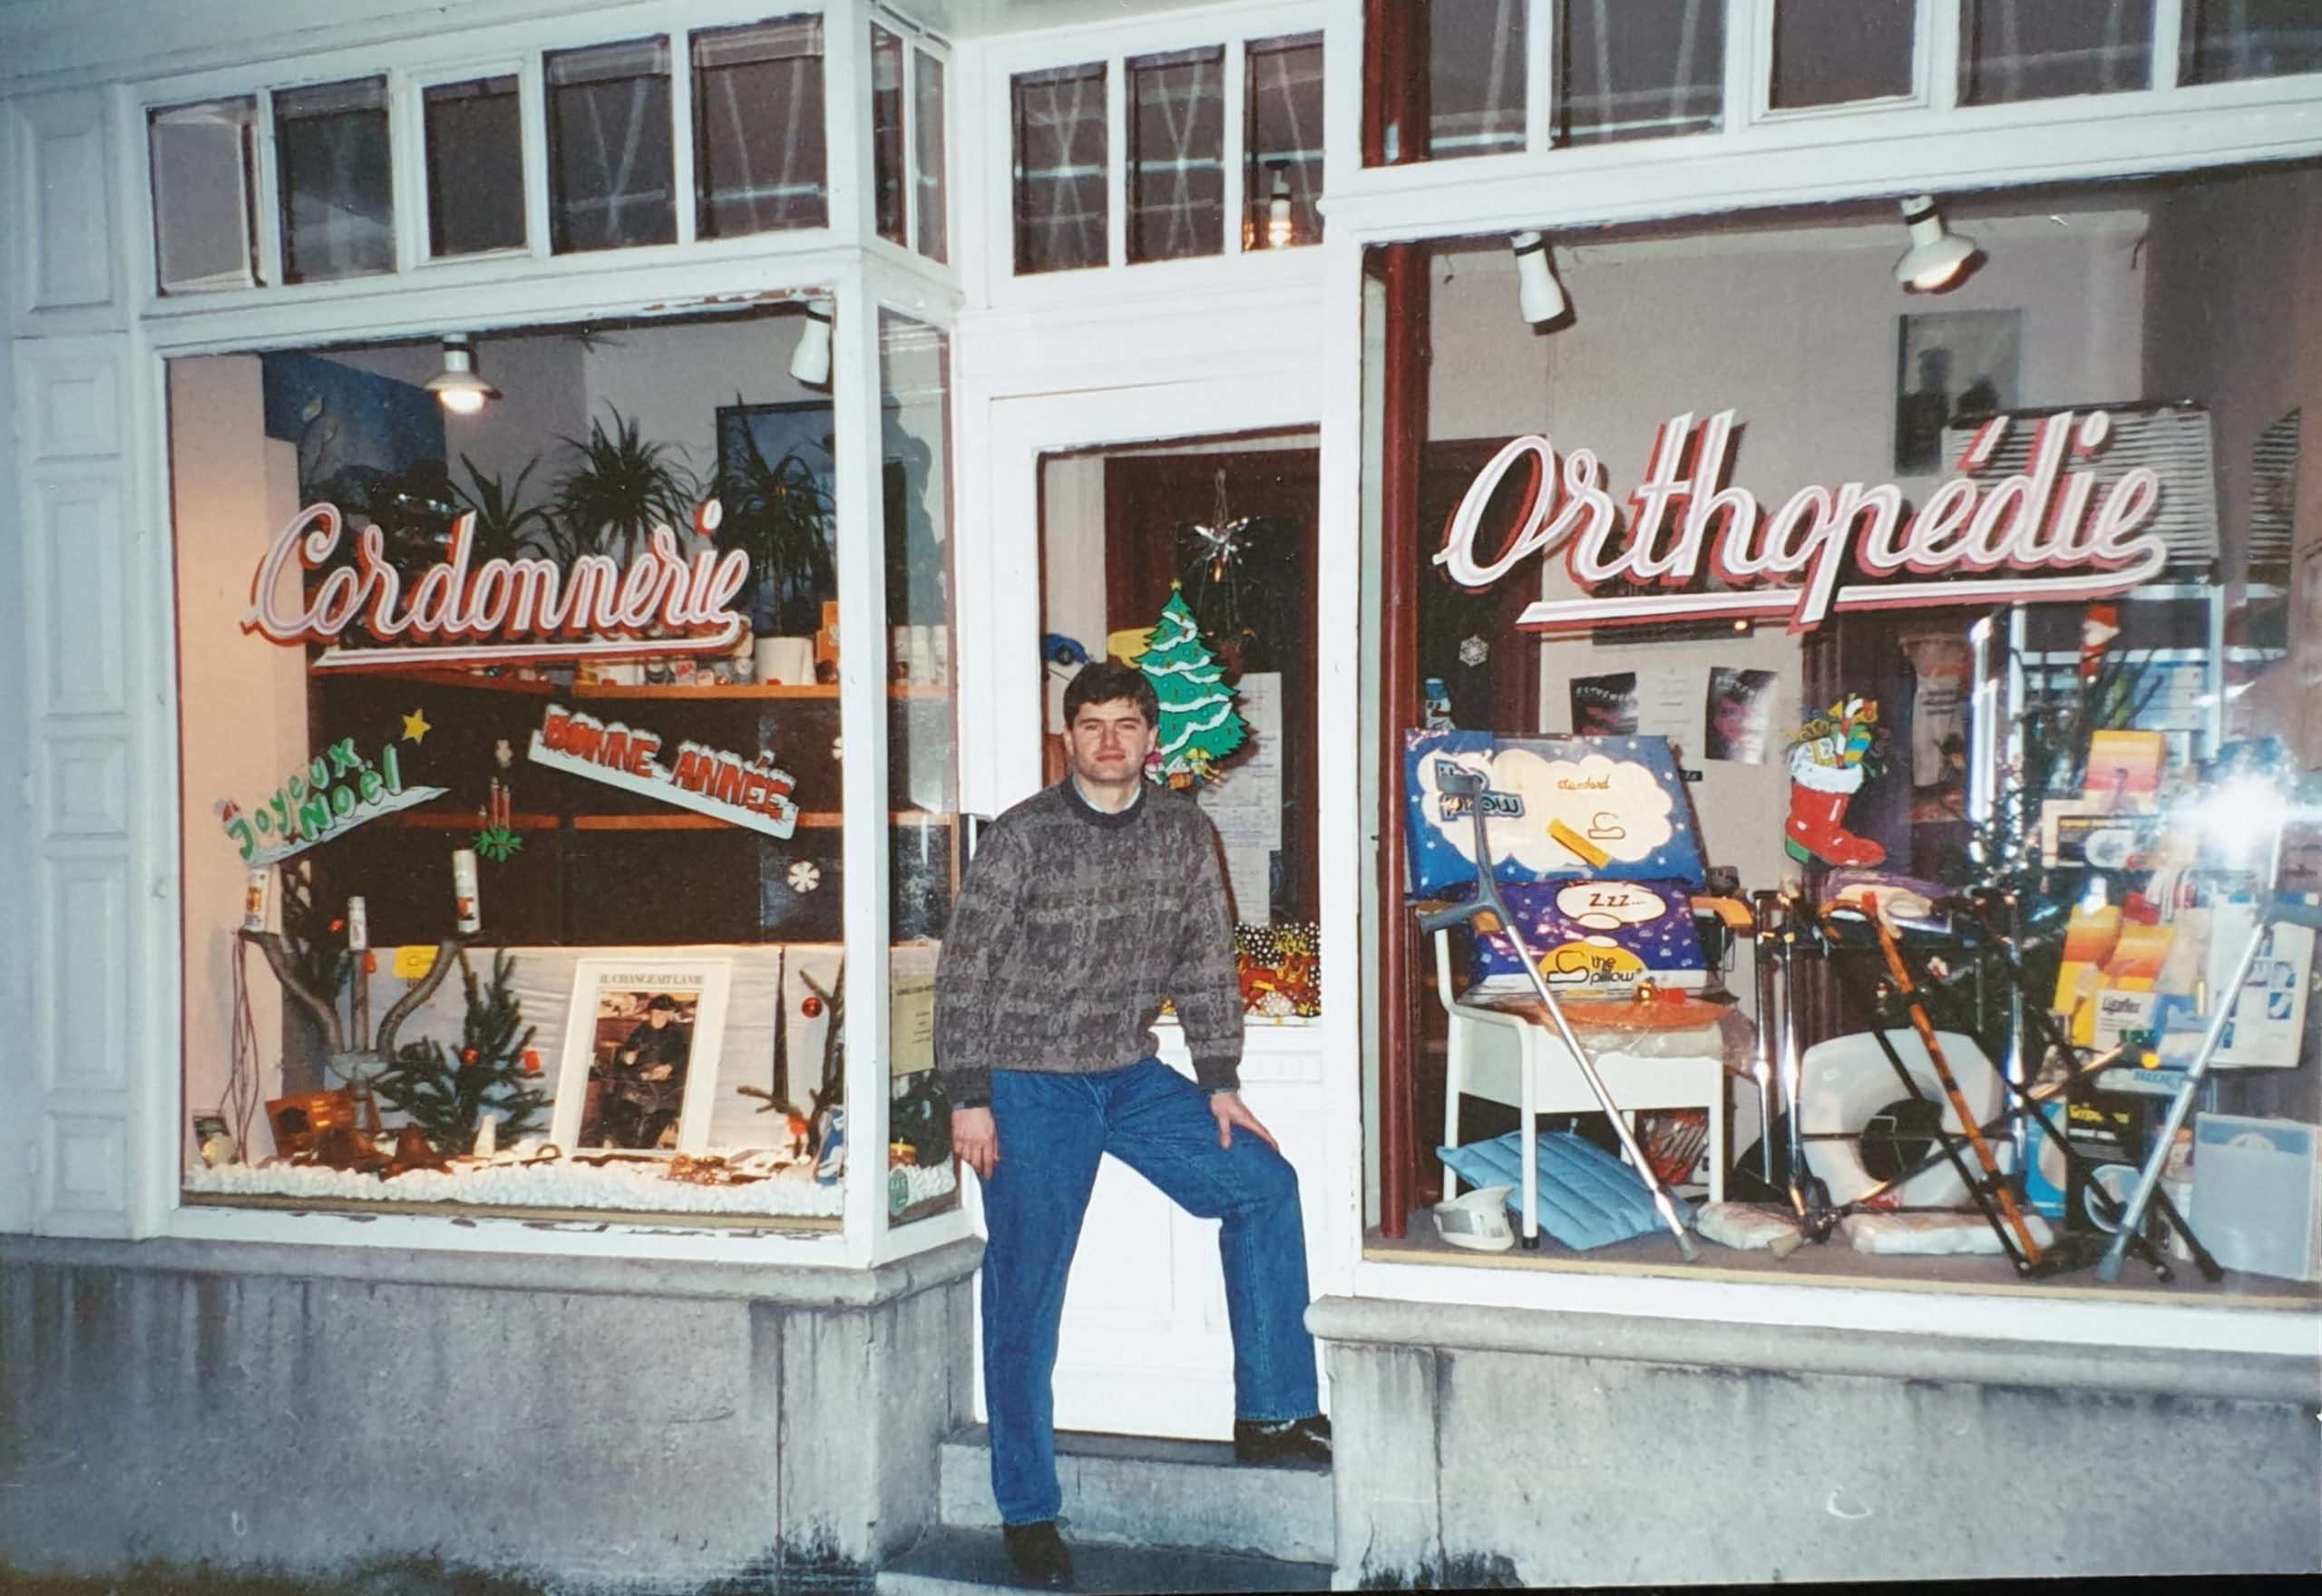 Paul Dascotte in front of his shop in 1989